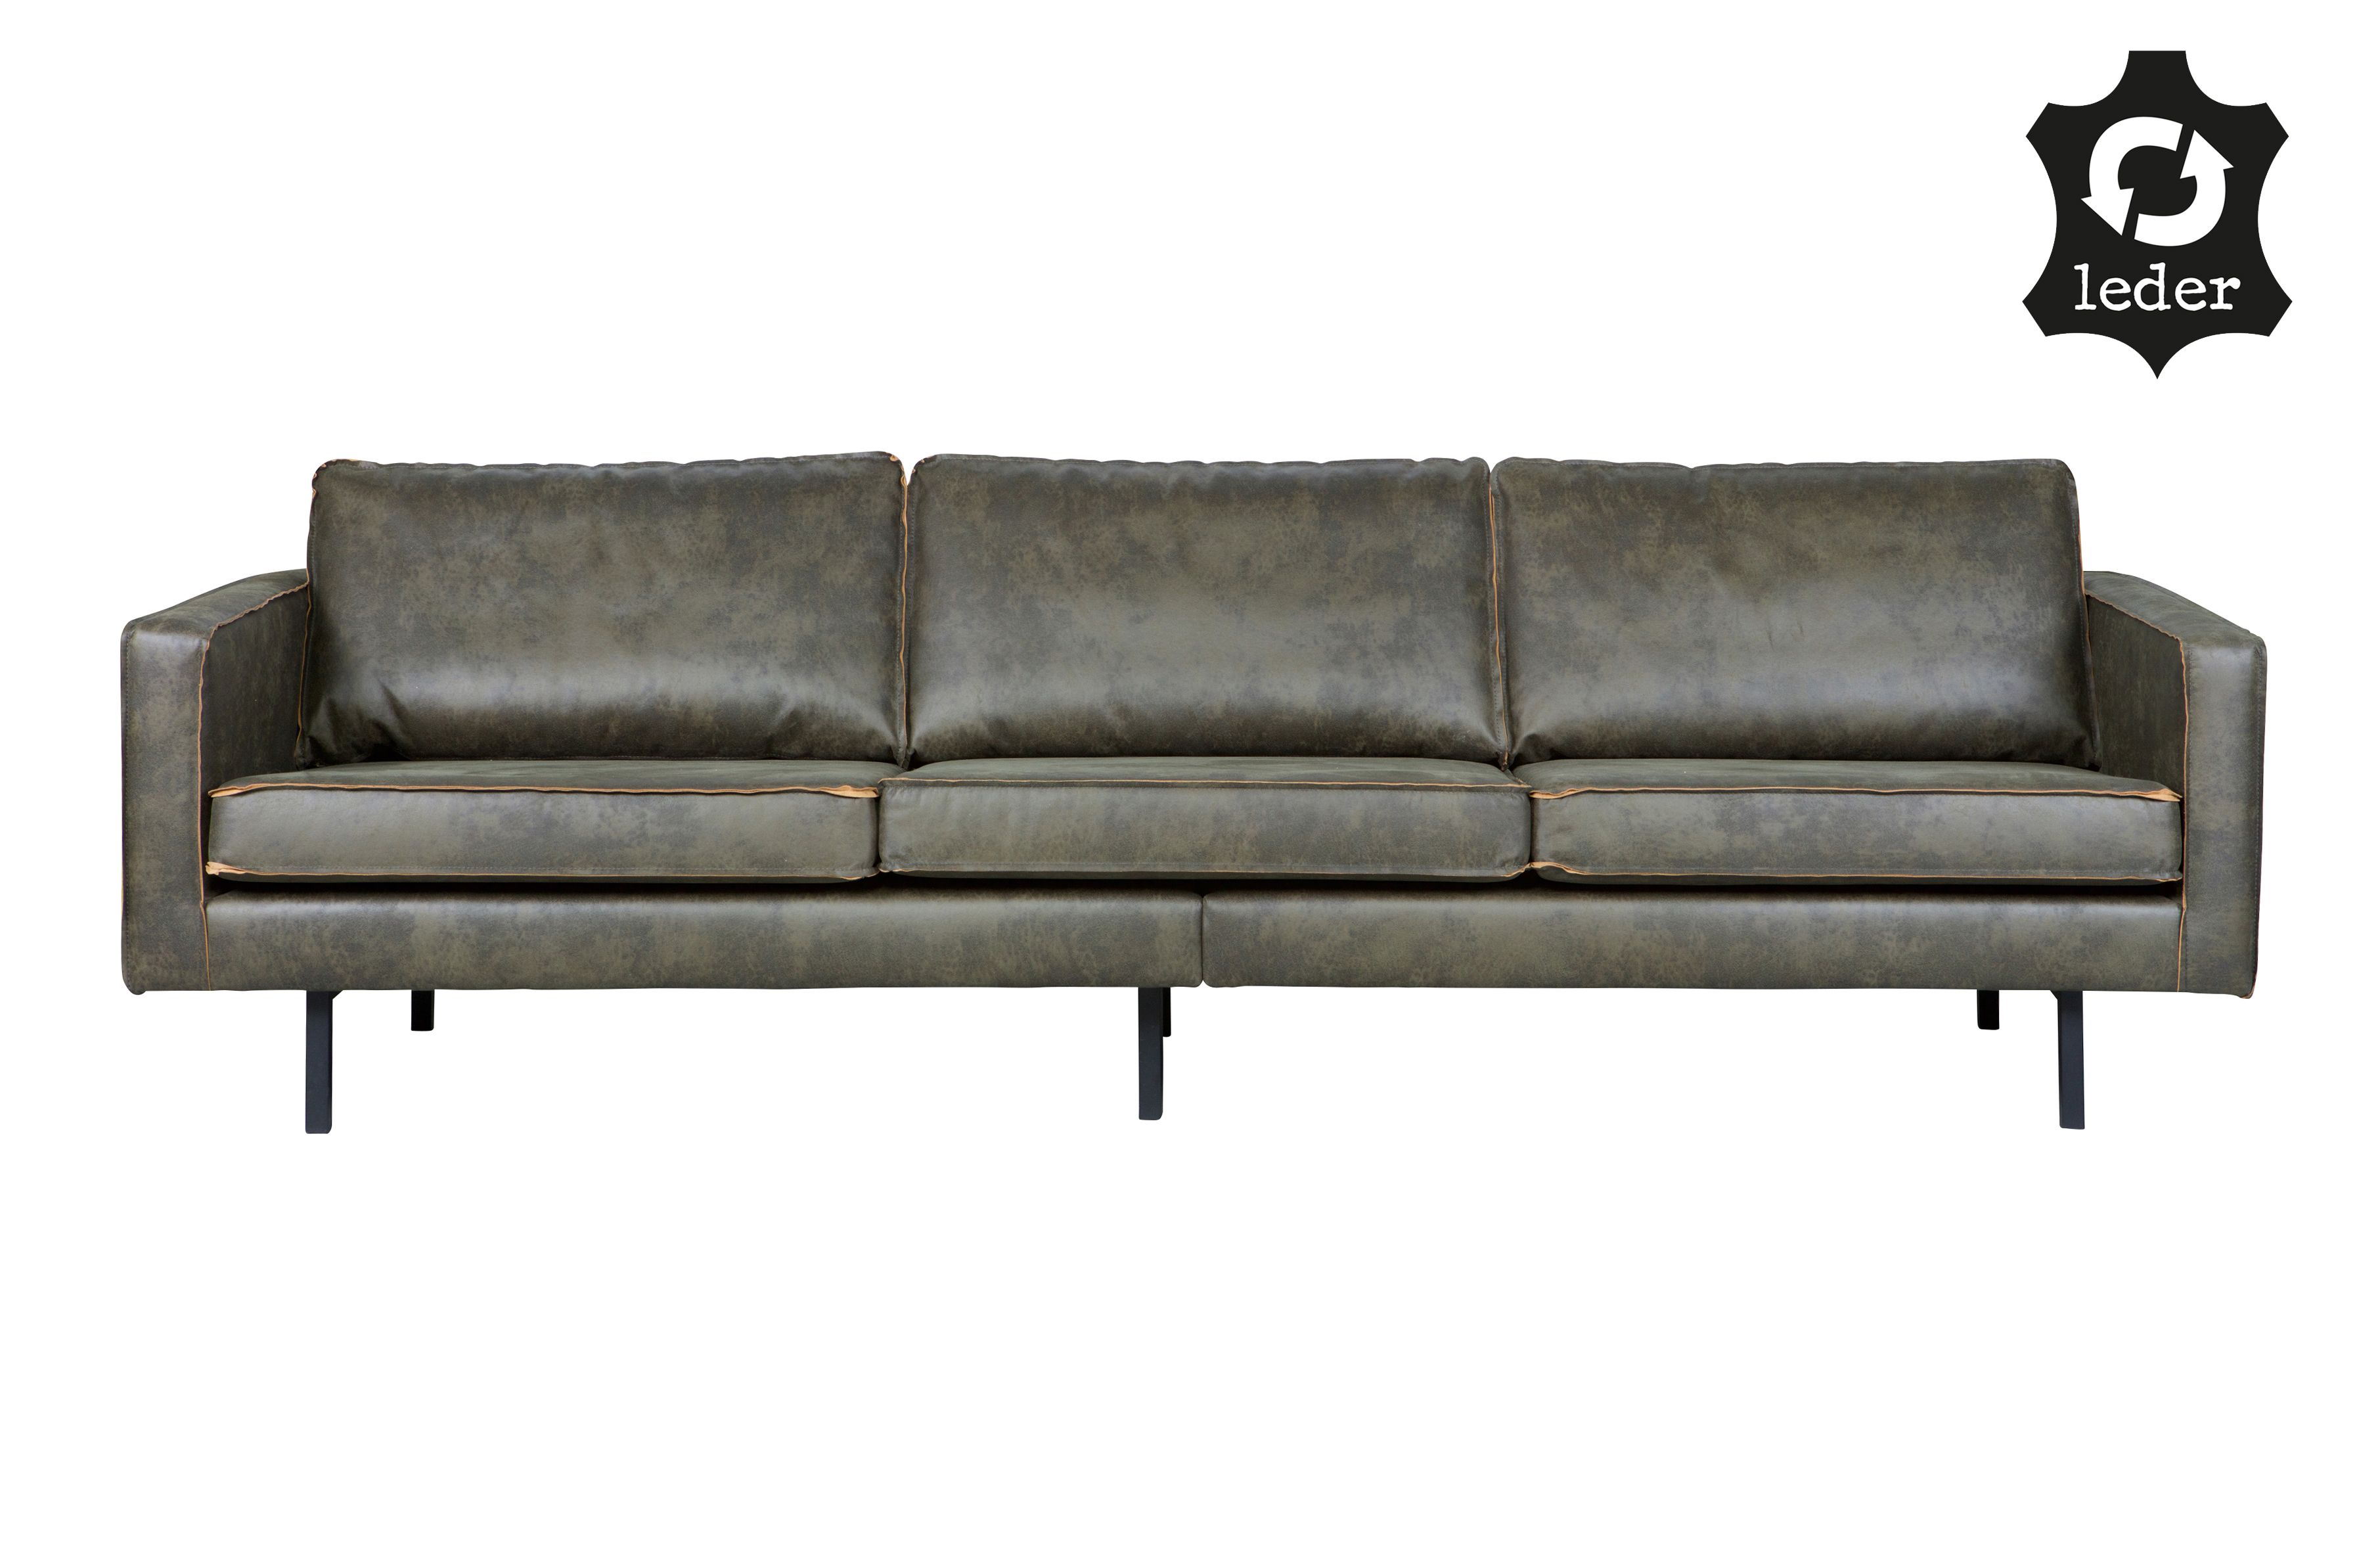 Pin By Jacob Lindblad On Home Pinterest Rodeo And Armchairs # Muebles Lozano Sofas